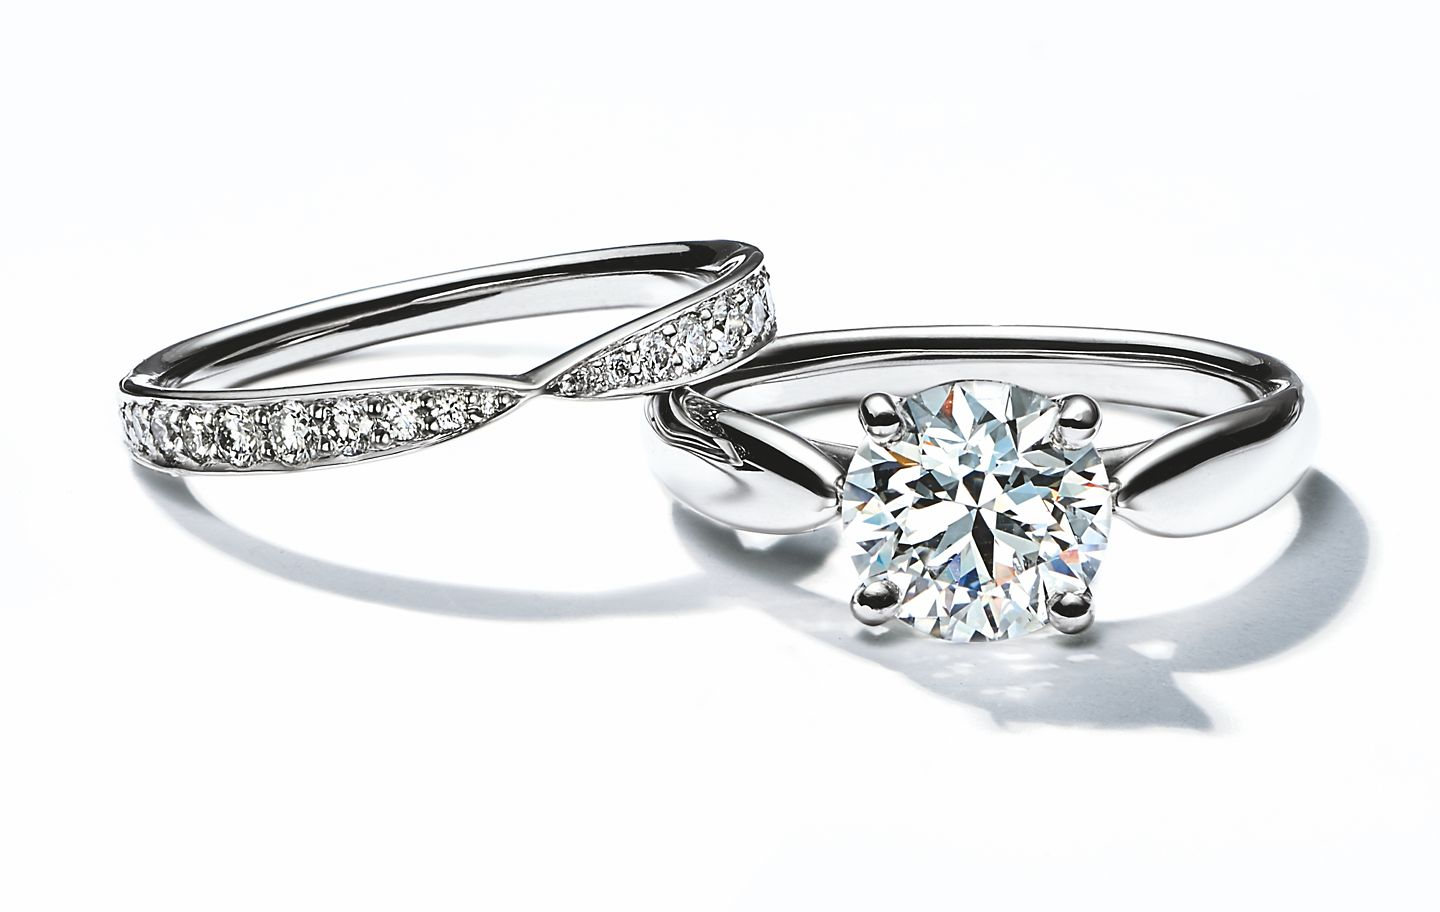 Tiffany & Co. Standard of Clarity